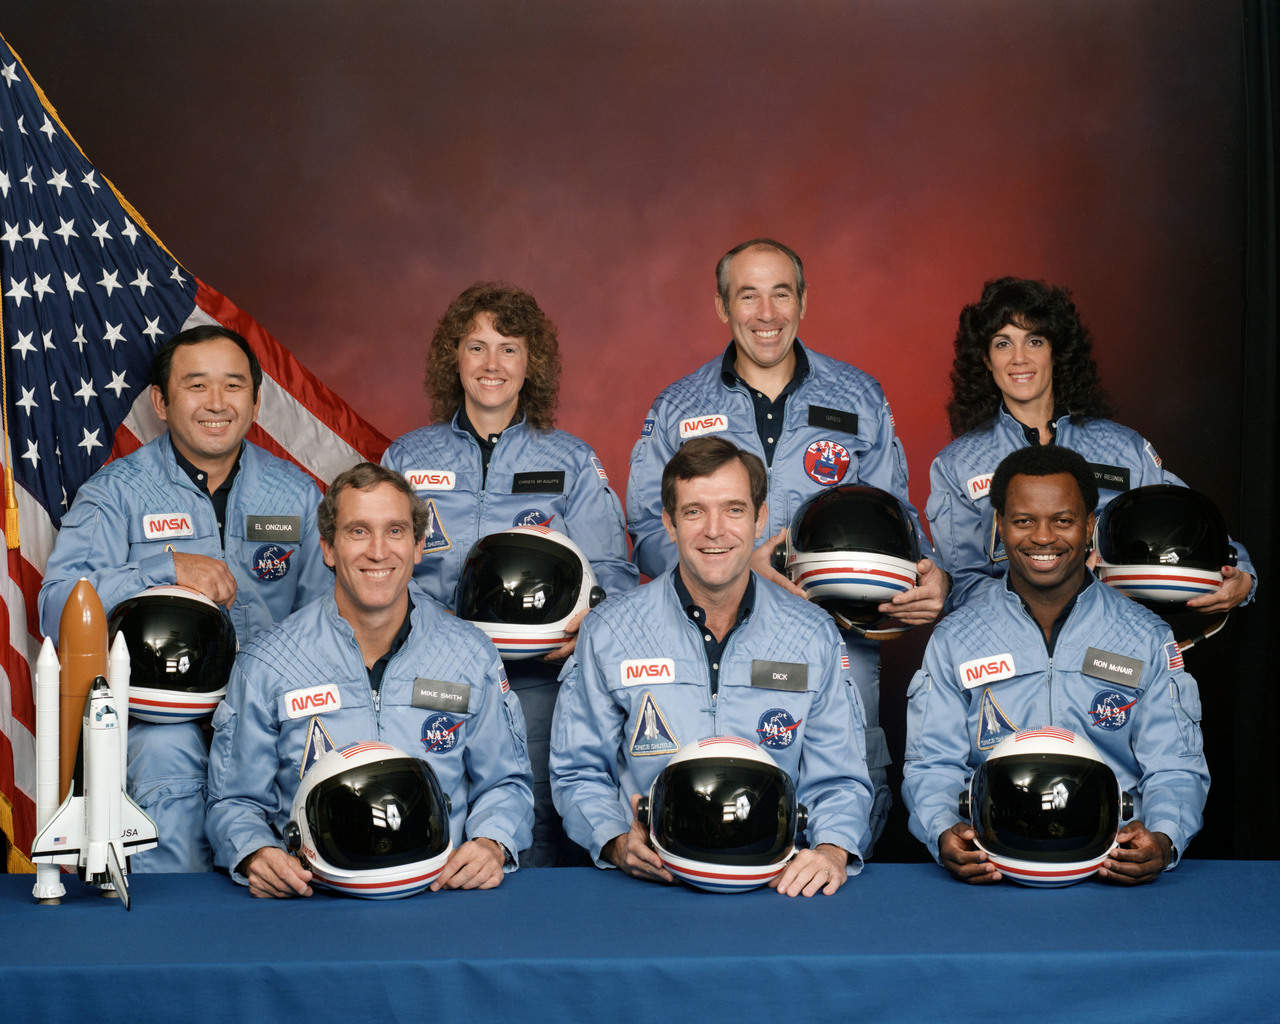 STS-51-L: 30 Years Ago Today